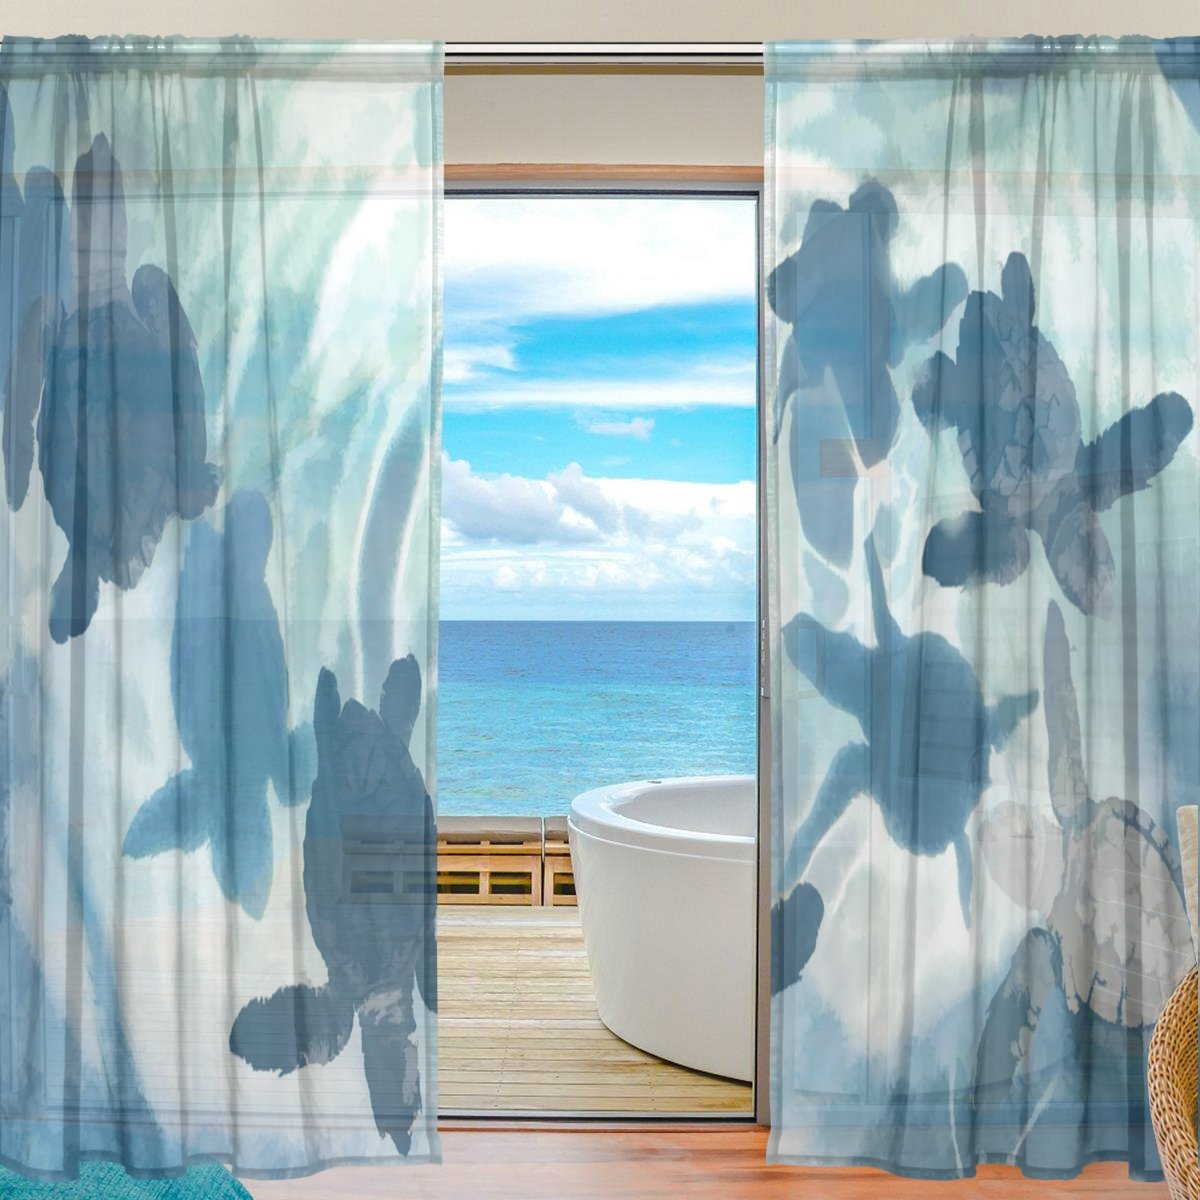 SEULIFE Window Sheer Curtain, Sea Ocean Animal Turtle Abstract Art Voile Curtain Drapes for Door Kitchen Living Room Bedroom 55x84 inches 2 Panels